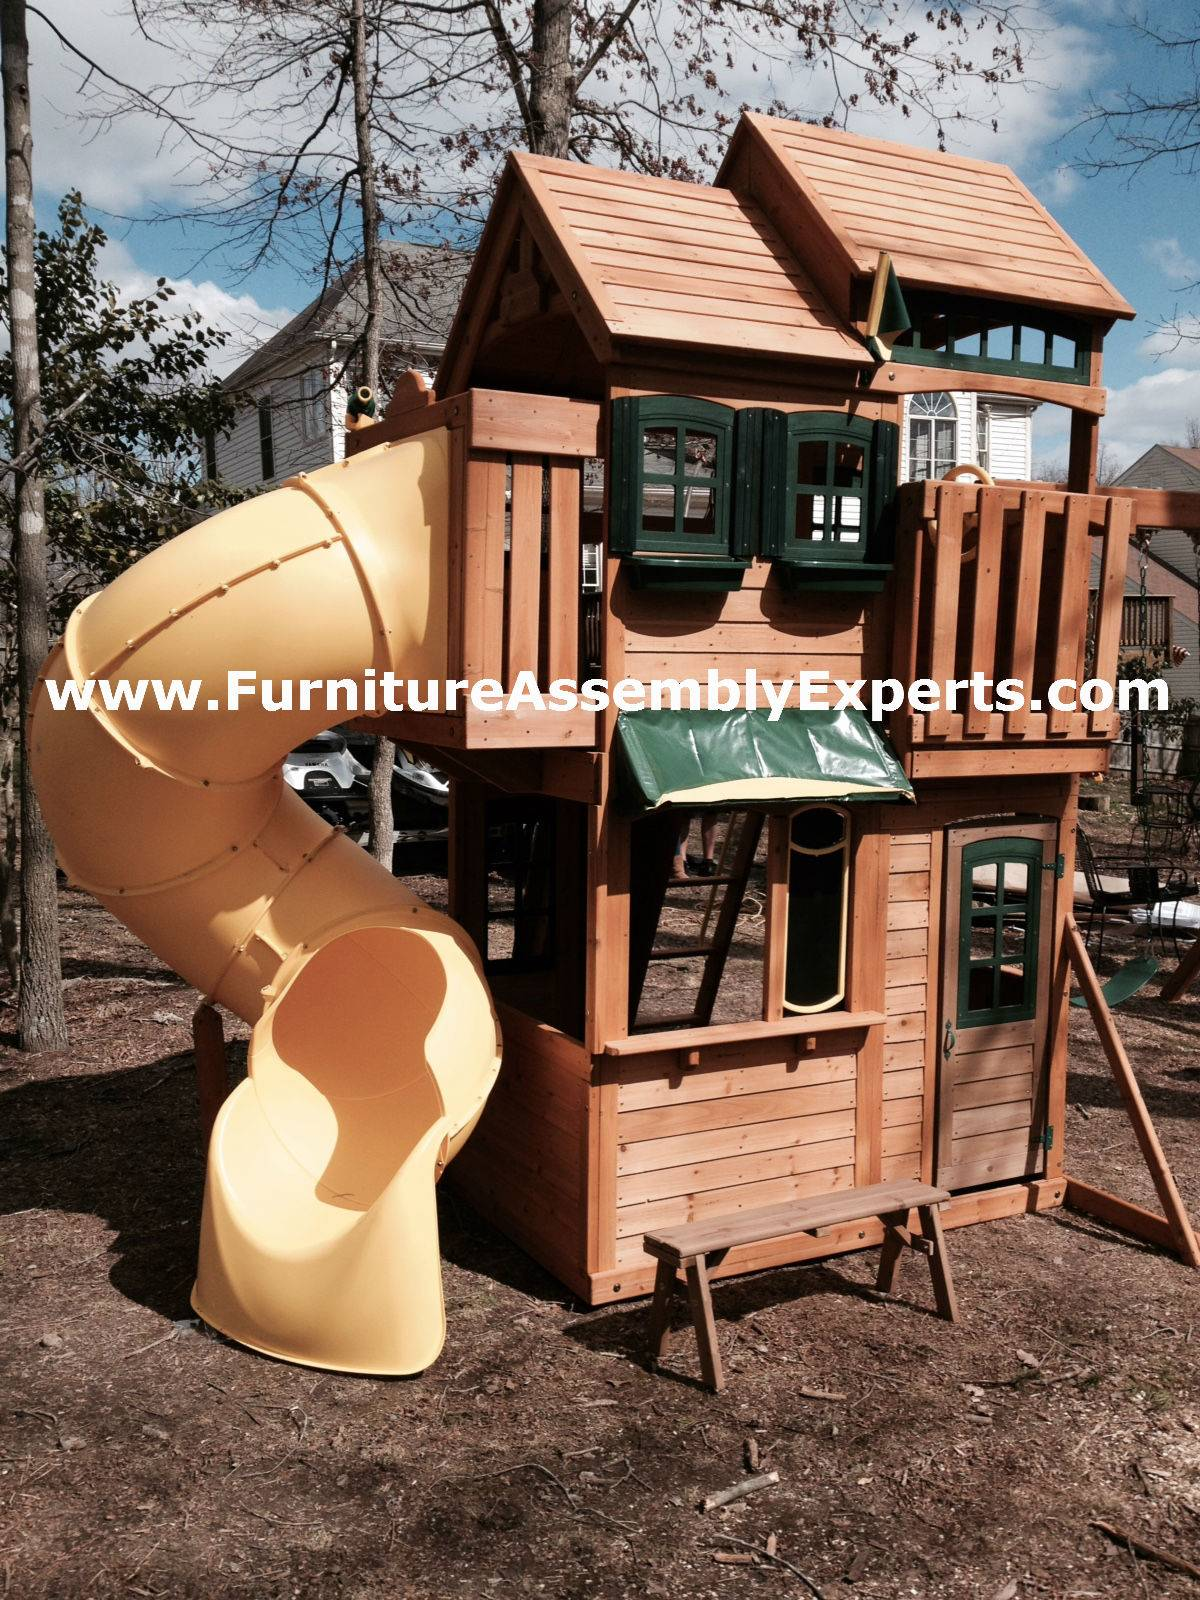 costco swing set assembly service in bowie MD